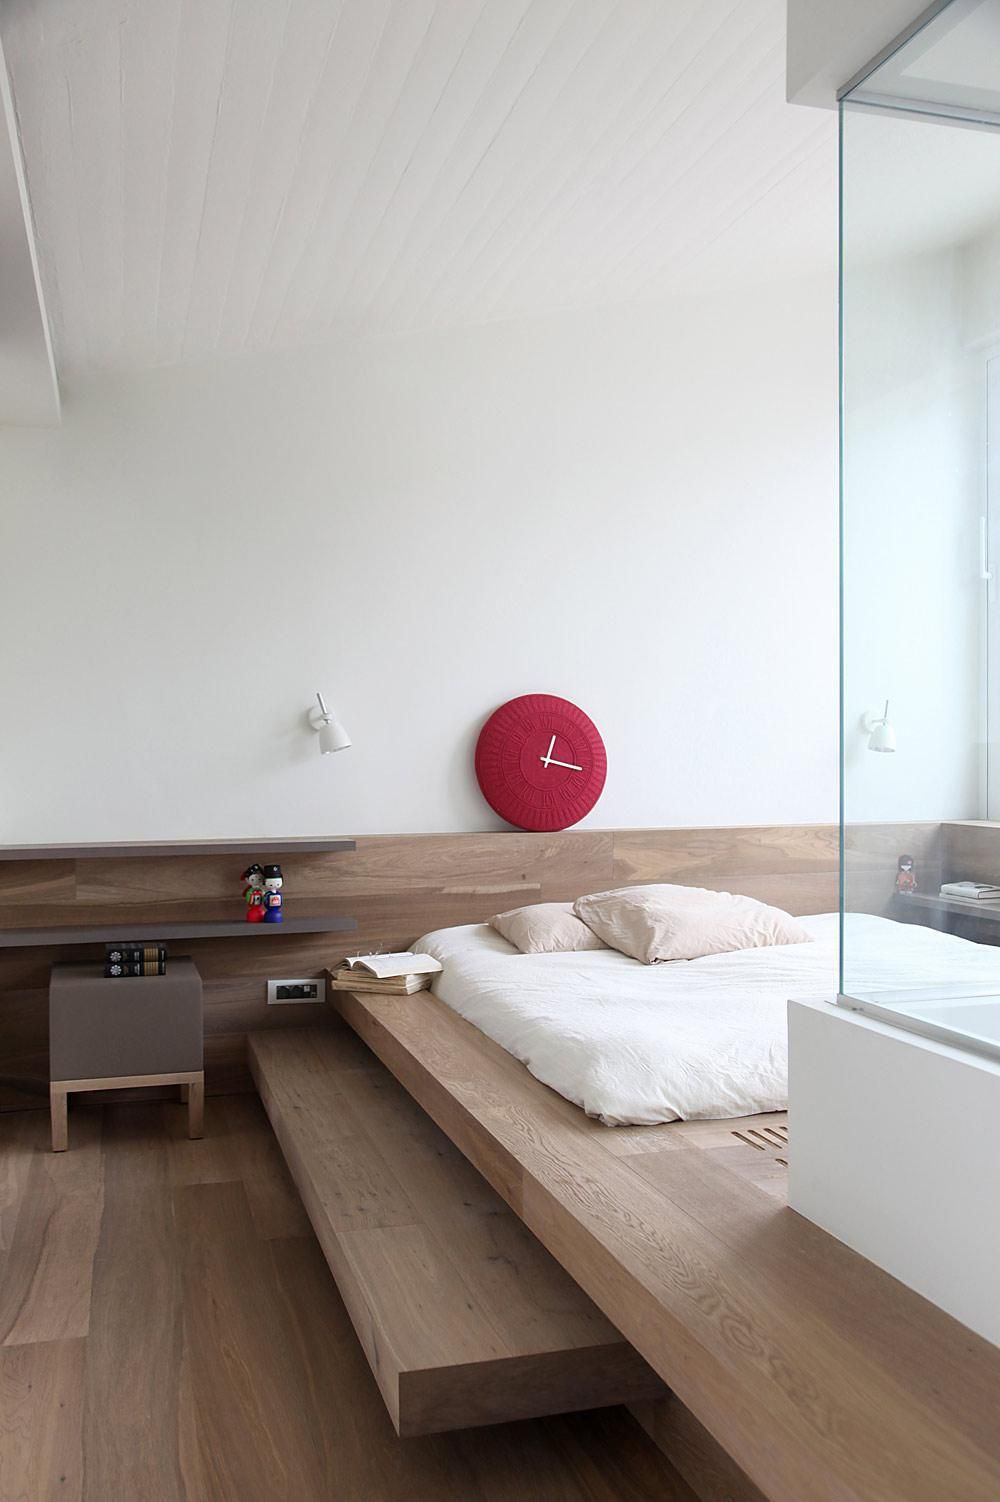 We Wanted To Stay In Bed Modern Bedroom Interior Minimalist